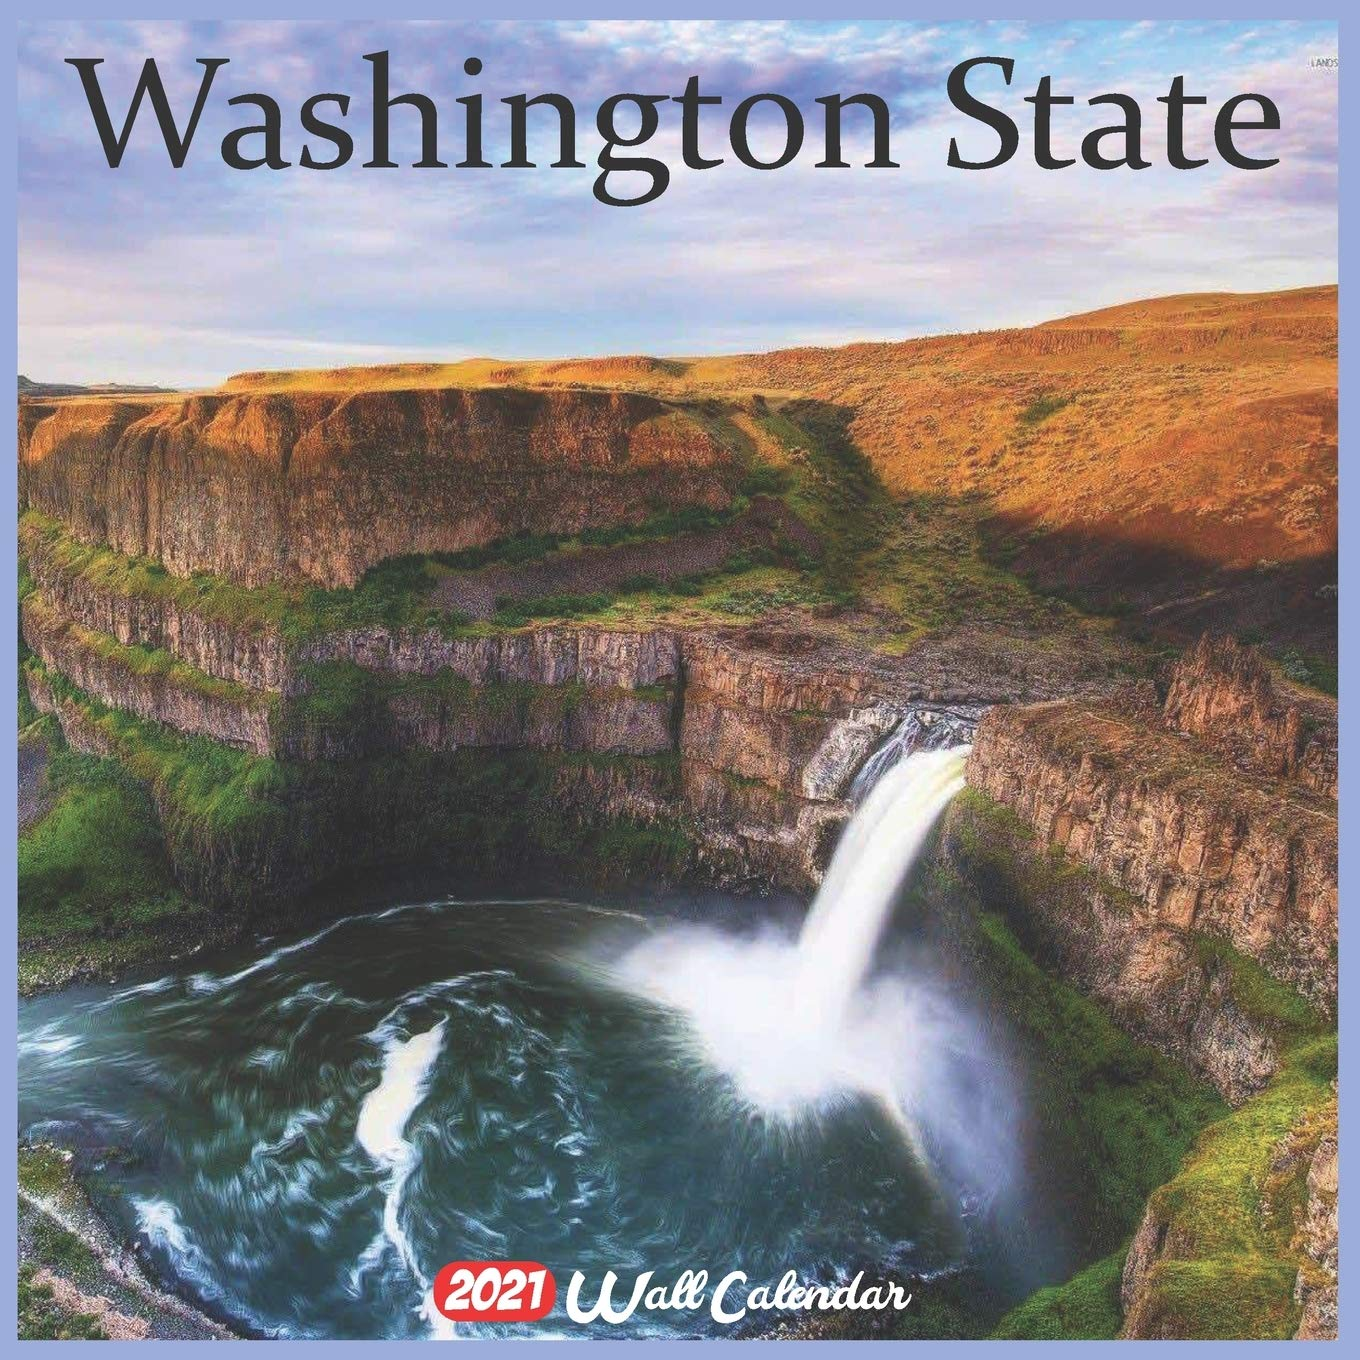 Rwu 2021-2022 Calendar Washington State 2021 Wall Calendar: Official Washington Wild